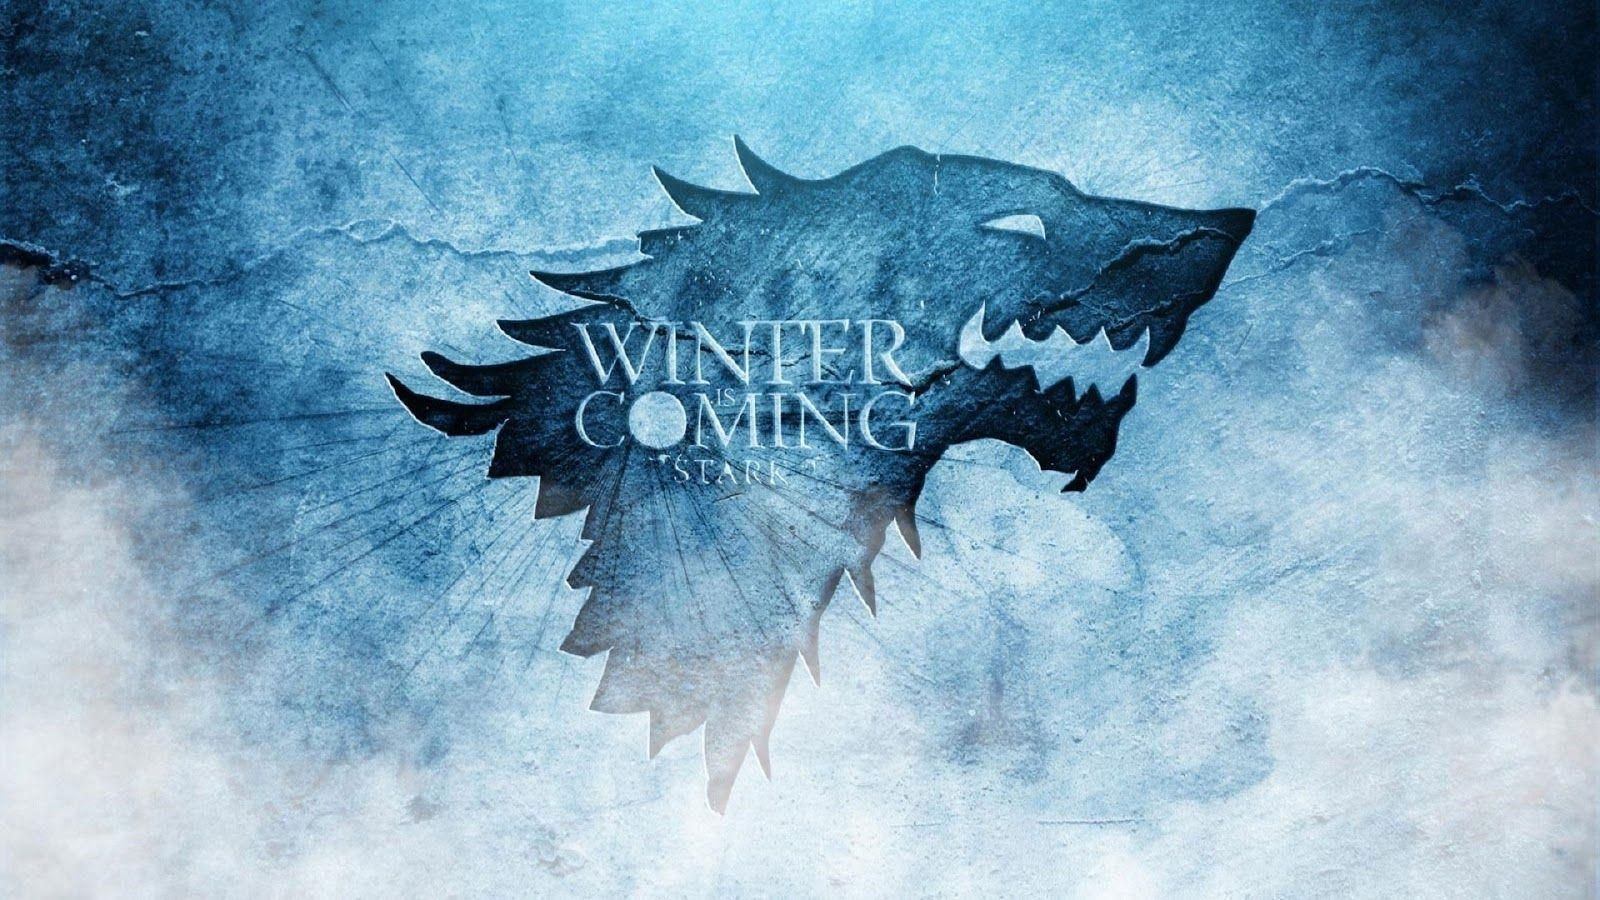 Game Of Thrones Season 7 Wallpapers Wallpaper Cave